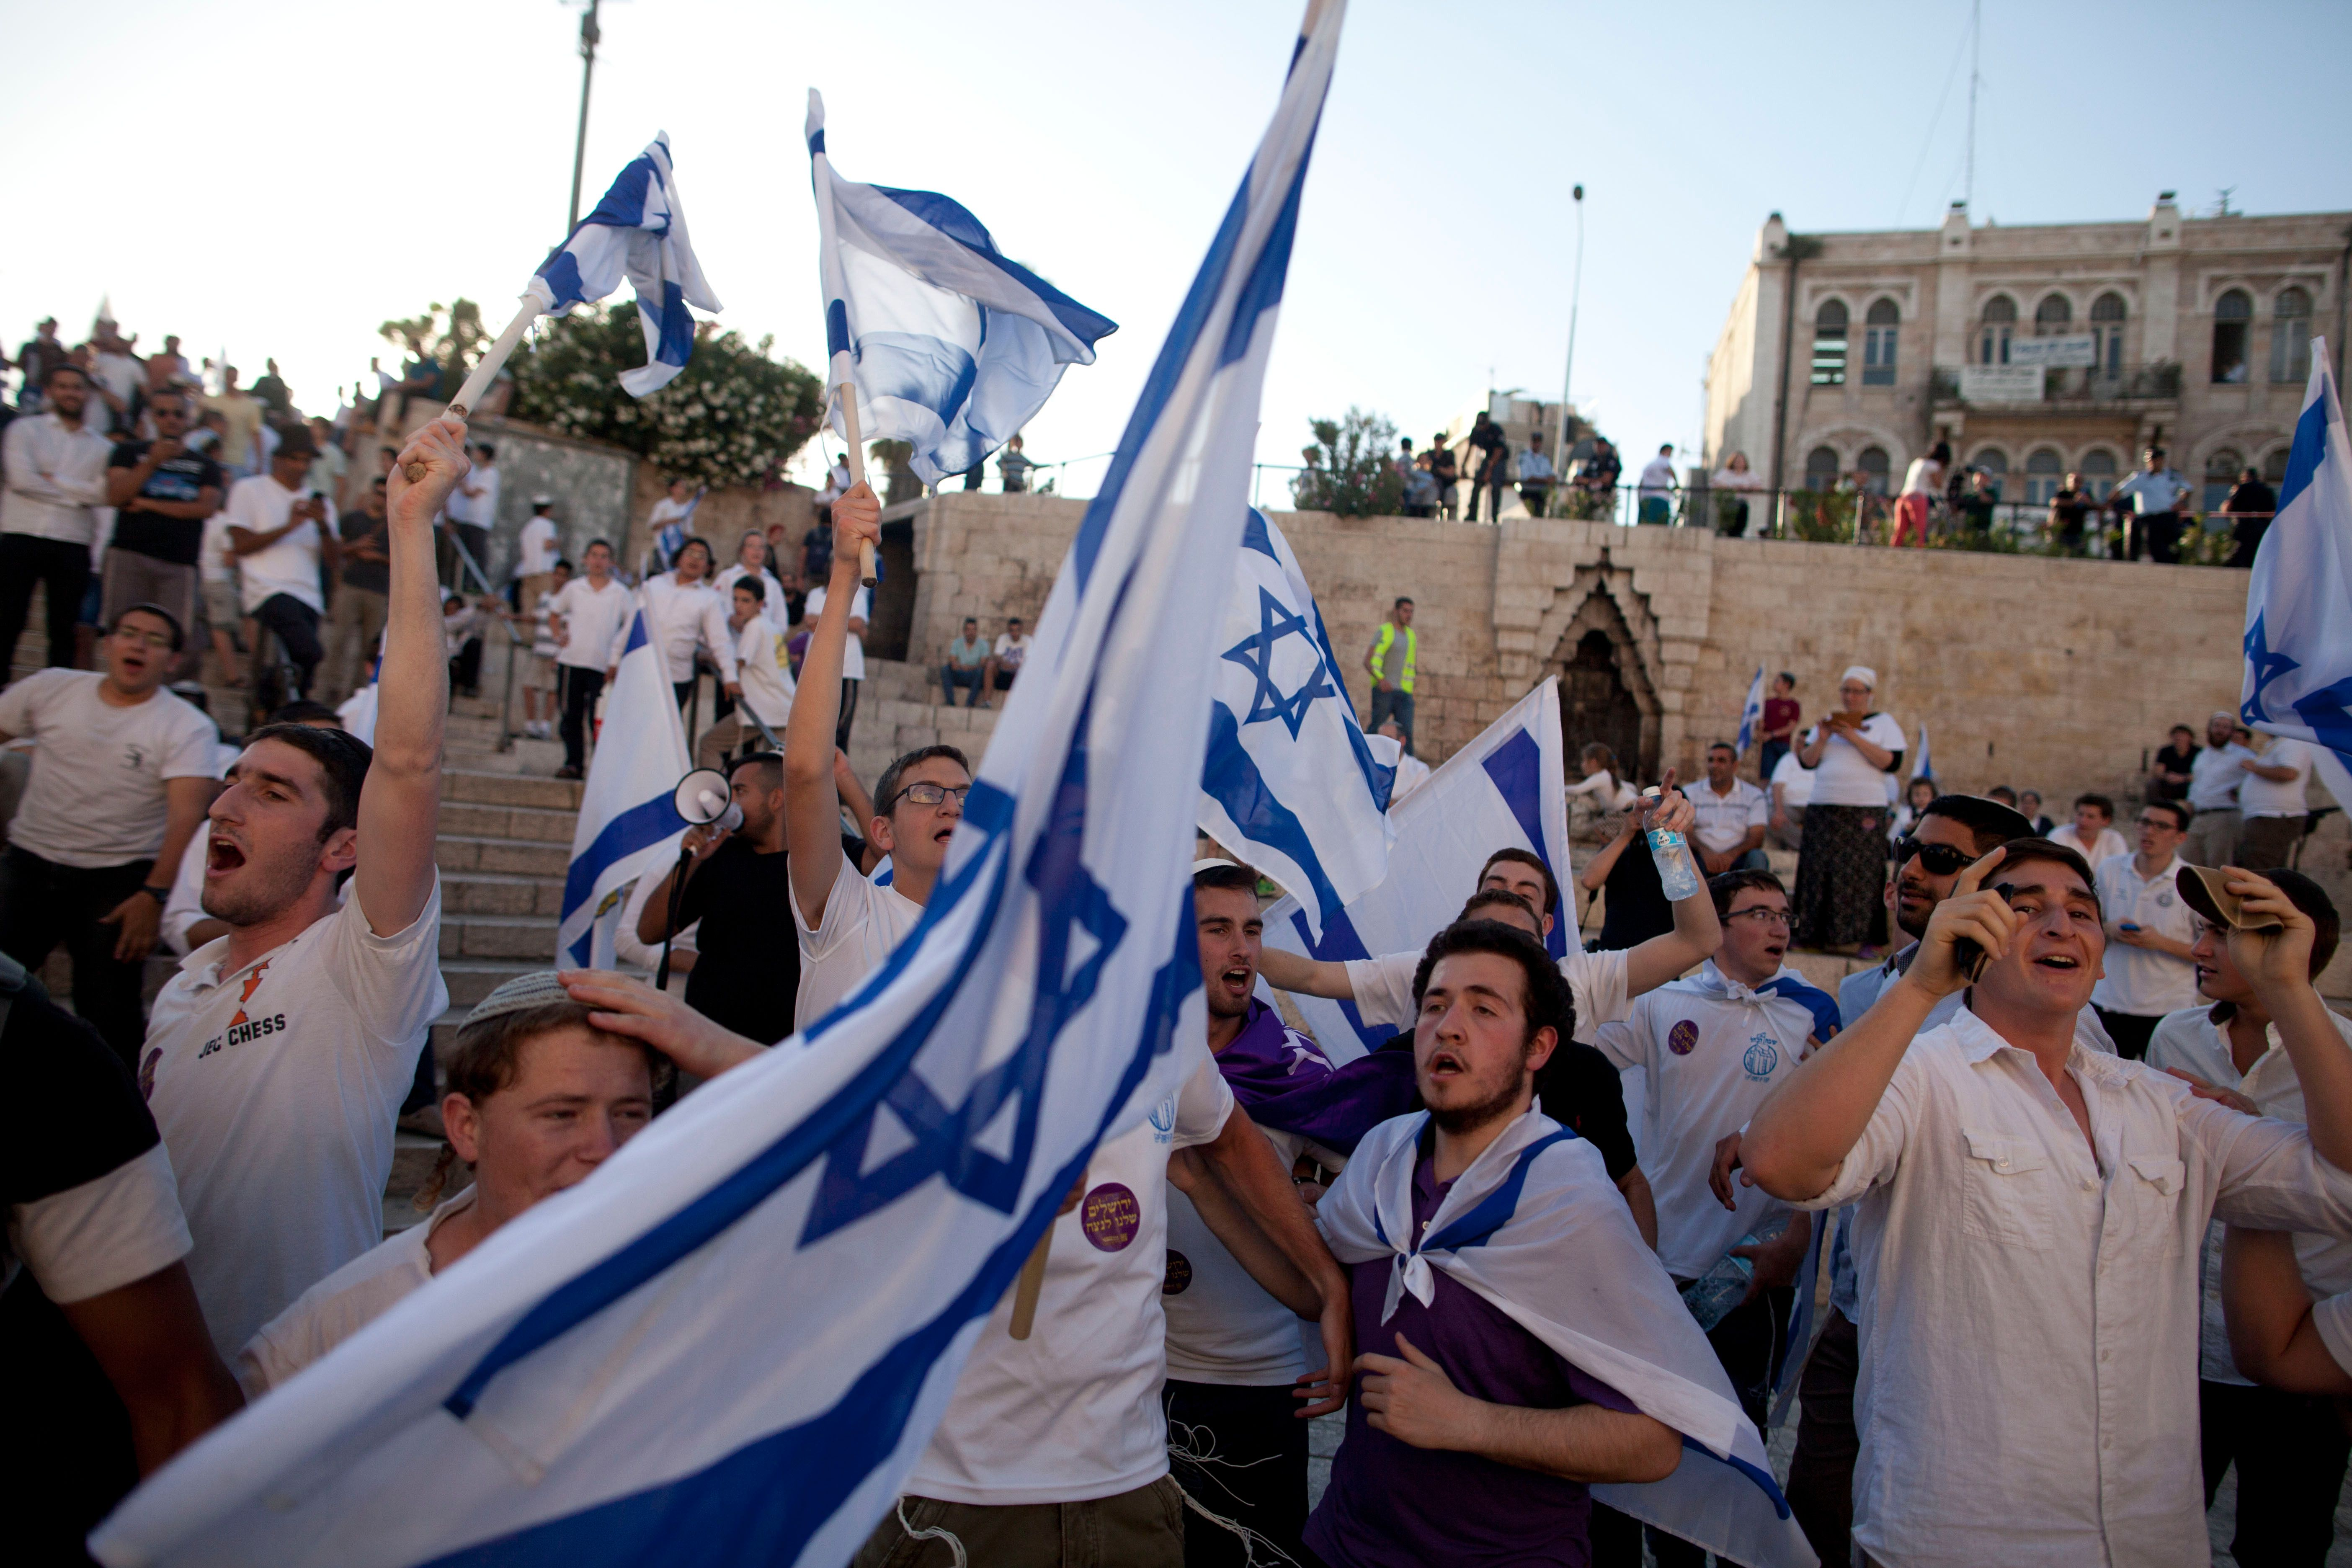 JERUSALEM, ISRAEL - MAY 17: Israelis dance with flags during a march marking Jerusalem Day on May 17, 2015 outside Jerusalem's old city, Israel. Israel is celebrating the anniversary of the 'unification' of Jerusalem, marking 48 years since it captured mainly Arab east Jerusalem during the 1967 Middle East war. (Photo by Lior Mizrahi/Getty Images)